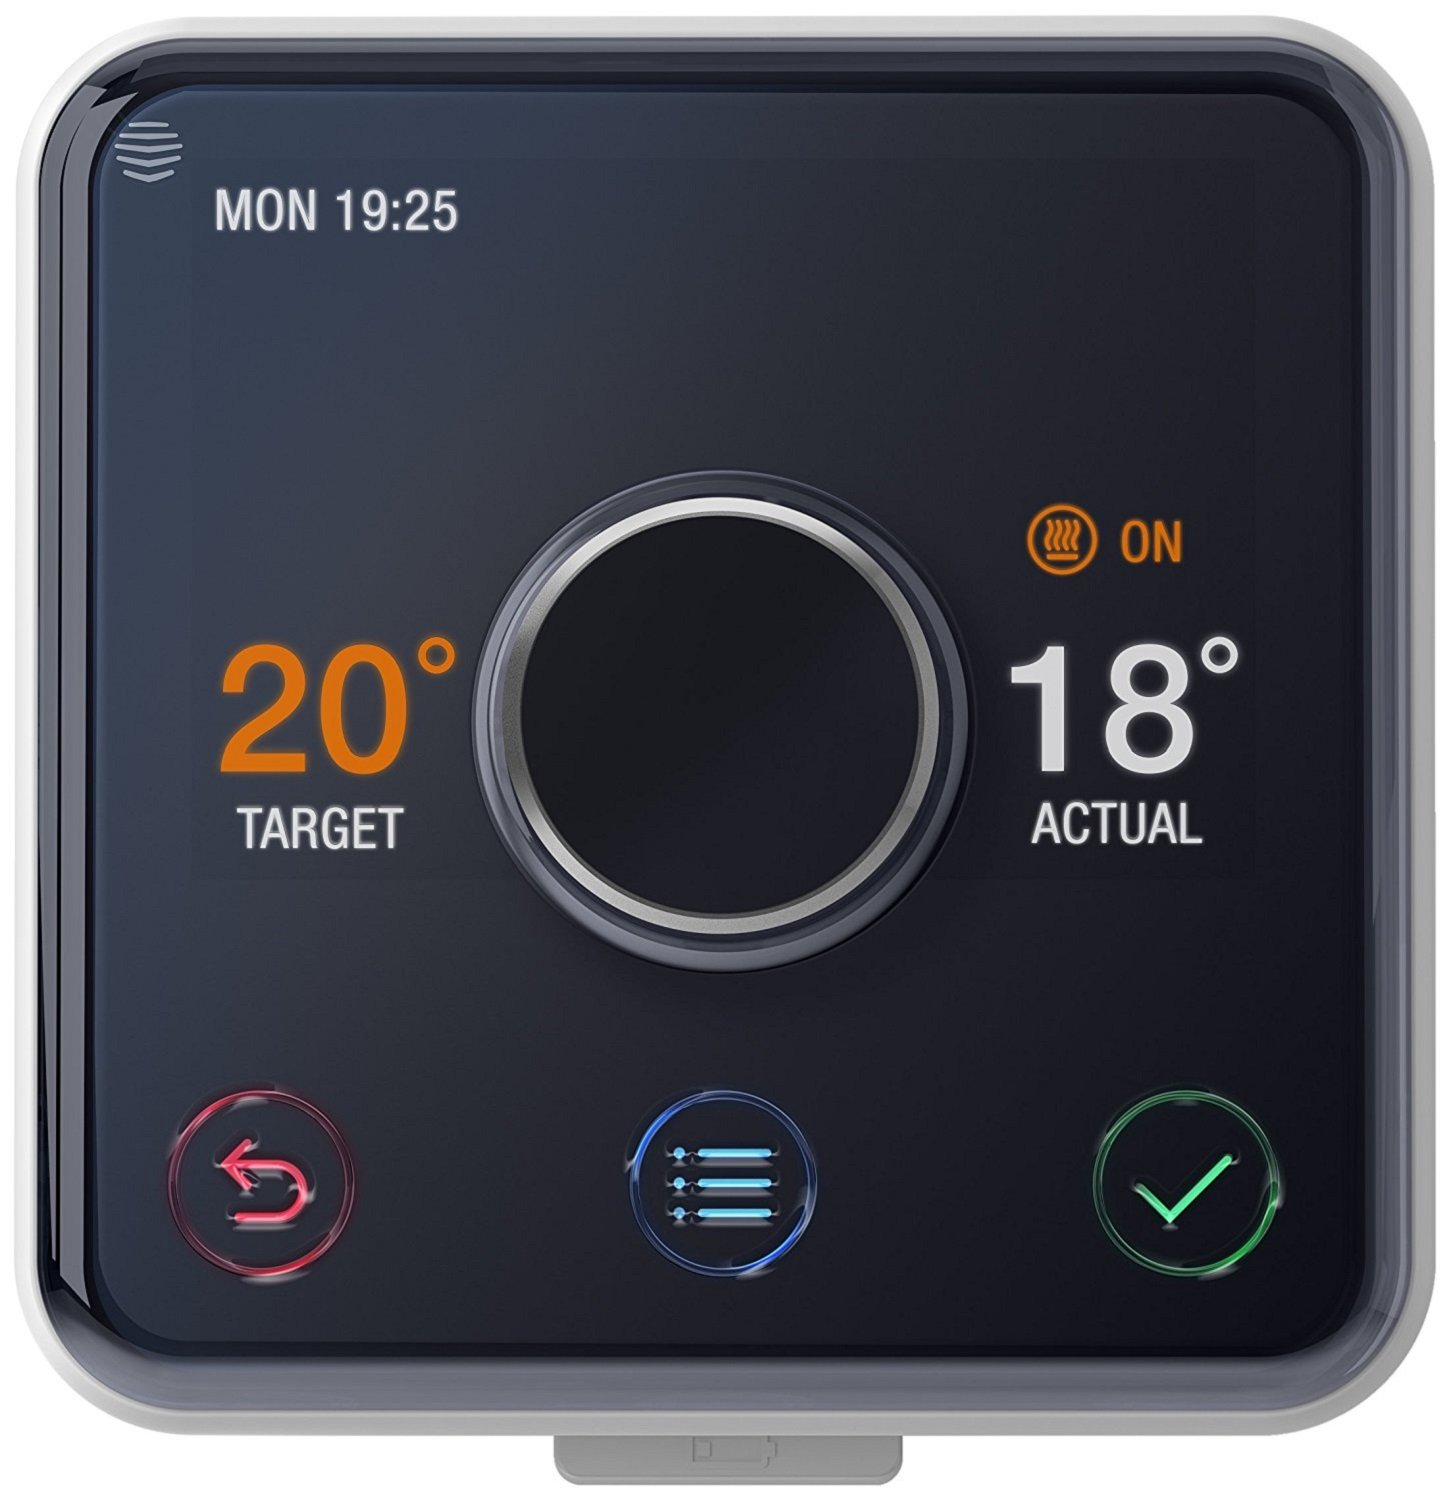 Hive Active Heating And Hot Water With Professional Installation, Works With Amazon Alexa by Hive (Image #1)